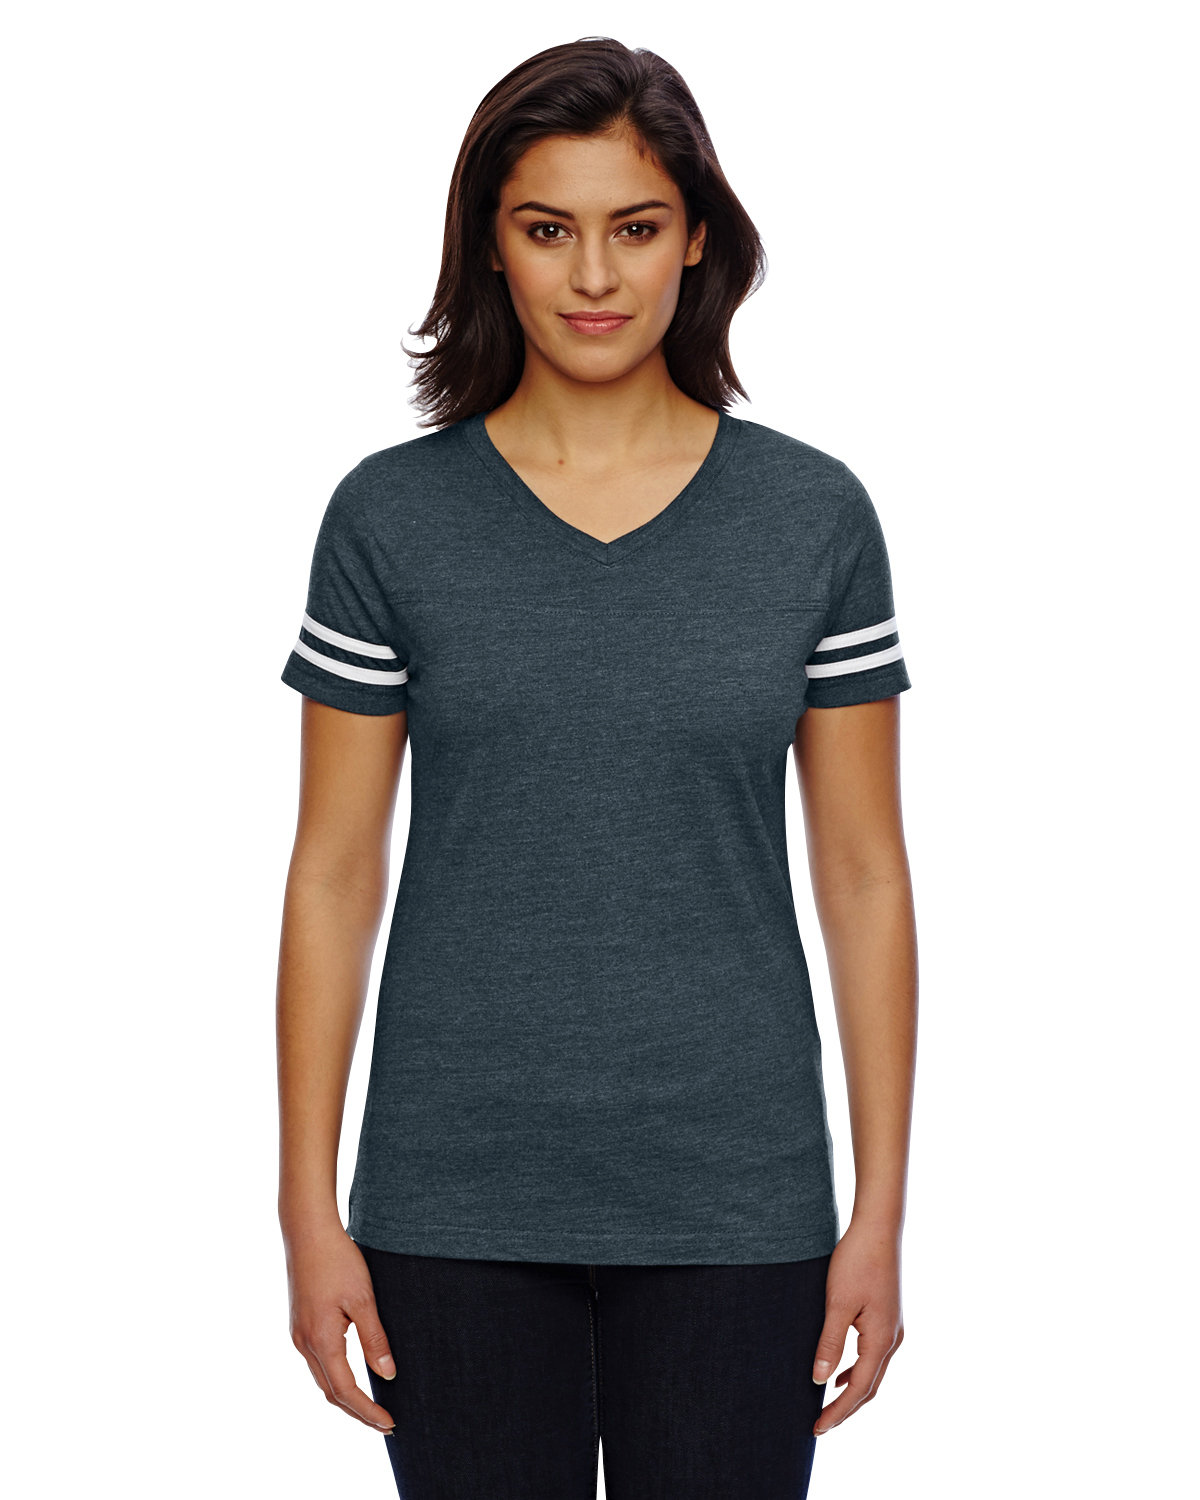 LAT Ladies' Football T-Shirt VN NAVY/ BLD WHT